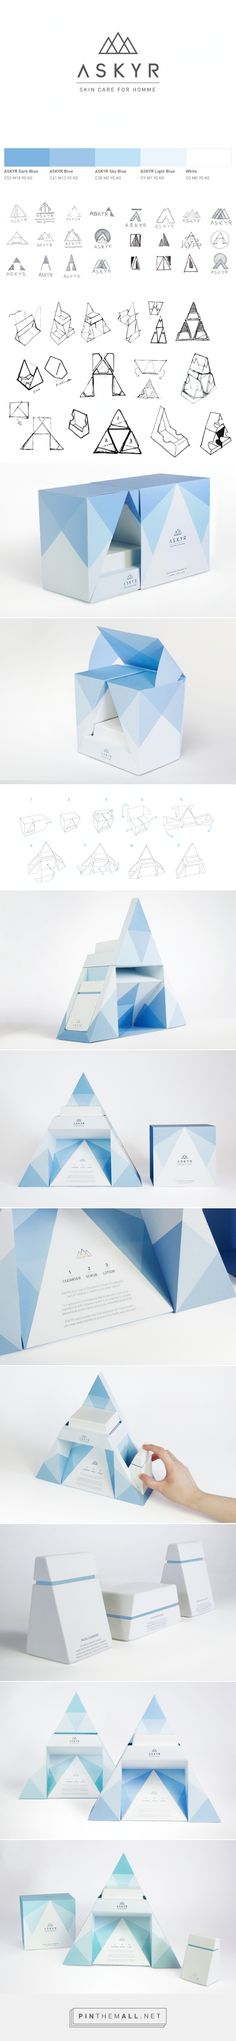 ASKYR ‪#‎Skincare‬ Product ‪#‎packaging‬ by In-young Bae, Hsiao Han Chen, Jiaru Lin & Sungmin Kim - http://www.packagingoftheworld.com/2015/02/askyr-skincare-product-student-project.html